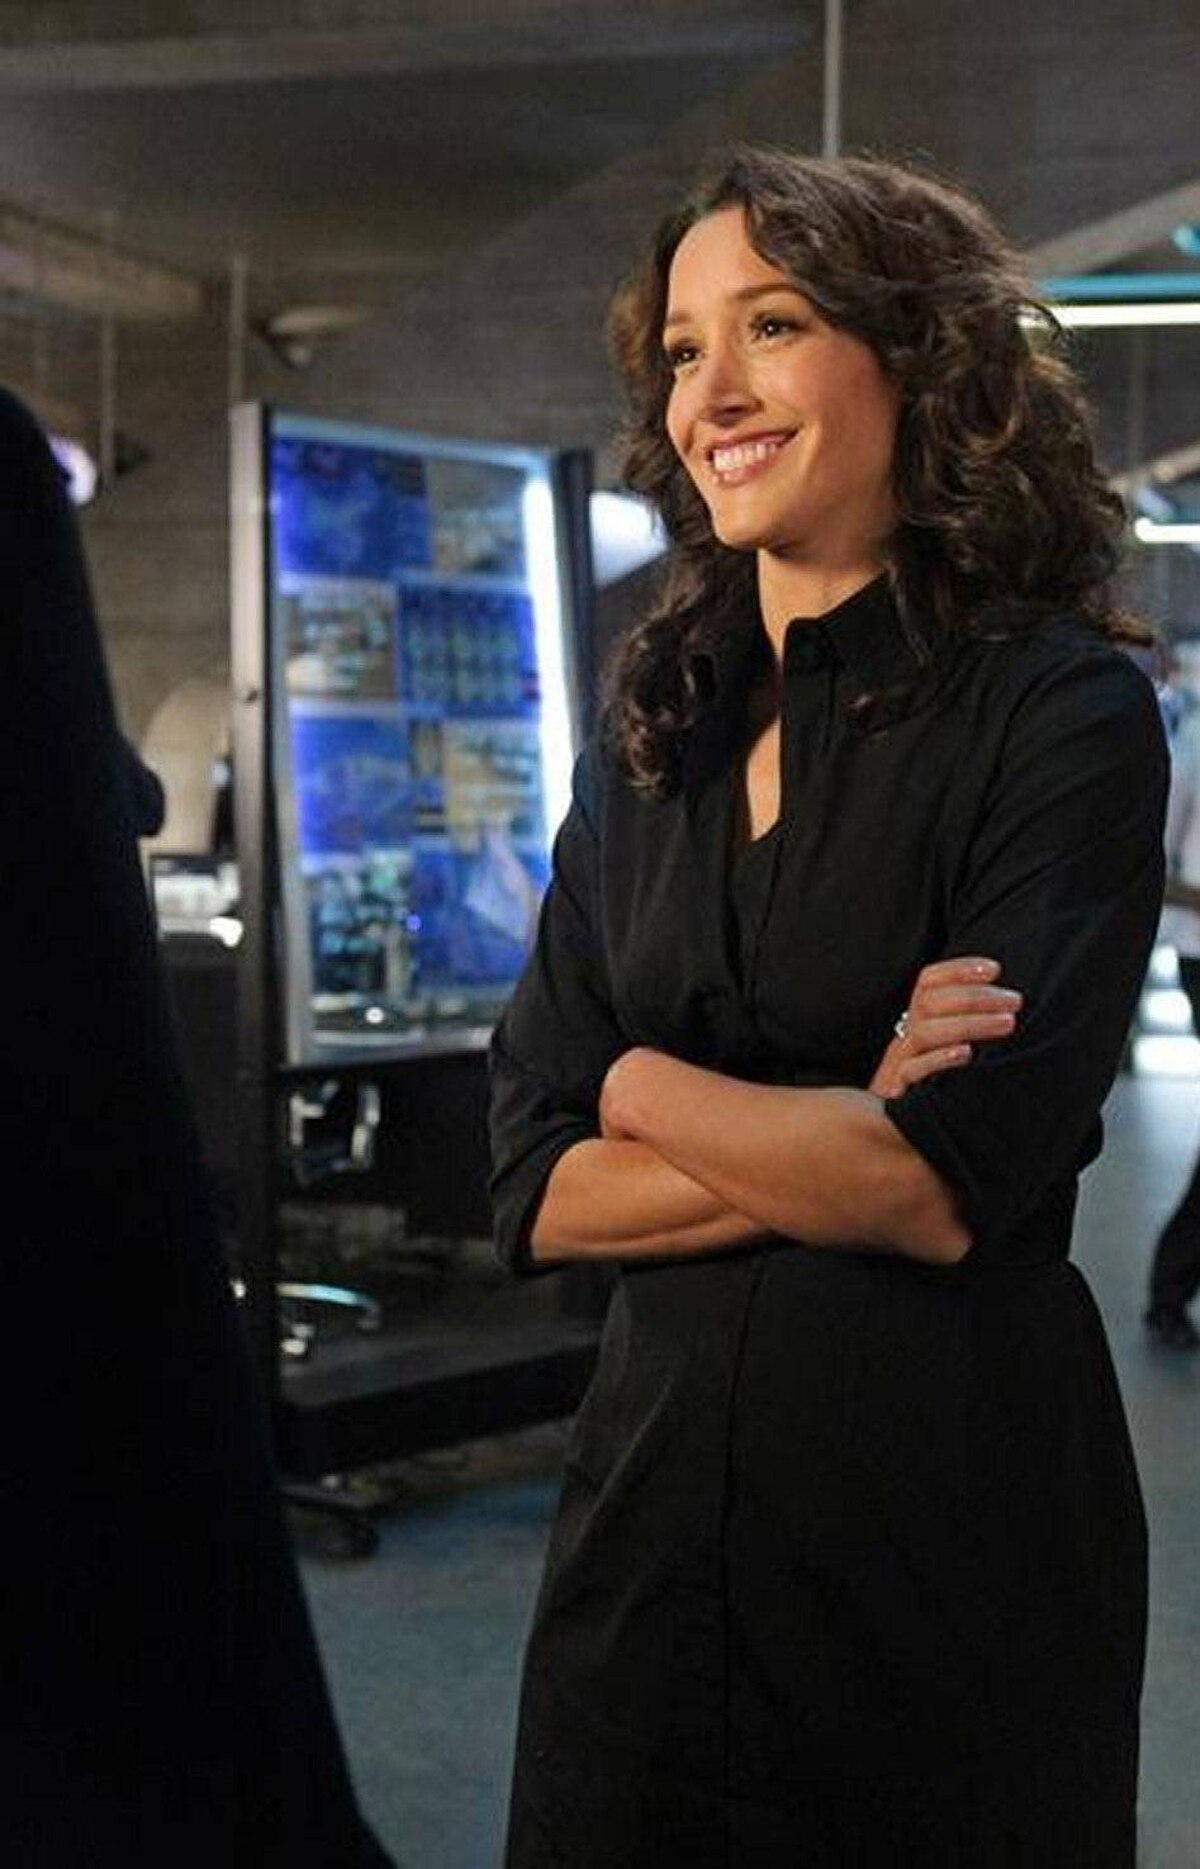 DRAMA Castle ABC, CTV Two, 10 p.m. ET/PT Jennifer Beals is not stewing in her juices over the cancellation of The Chicago Code. The former model and Flashdance star guest-stars in this hugely popular crime drama in the role of Sophia Conrad, a sexy and dangerous CIA operative who, as it turns out, was the inspiration for a series of espionage novels by series regular Rick Castle (Nathan Fillion). In tonight's second half of a two-part episode, Ms. Conrad teams with Castle and NYPD detective Kate Beckett (Stana Katic) to derail a chain of international events that could plunge the U.S. into a major military conflict.